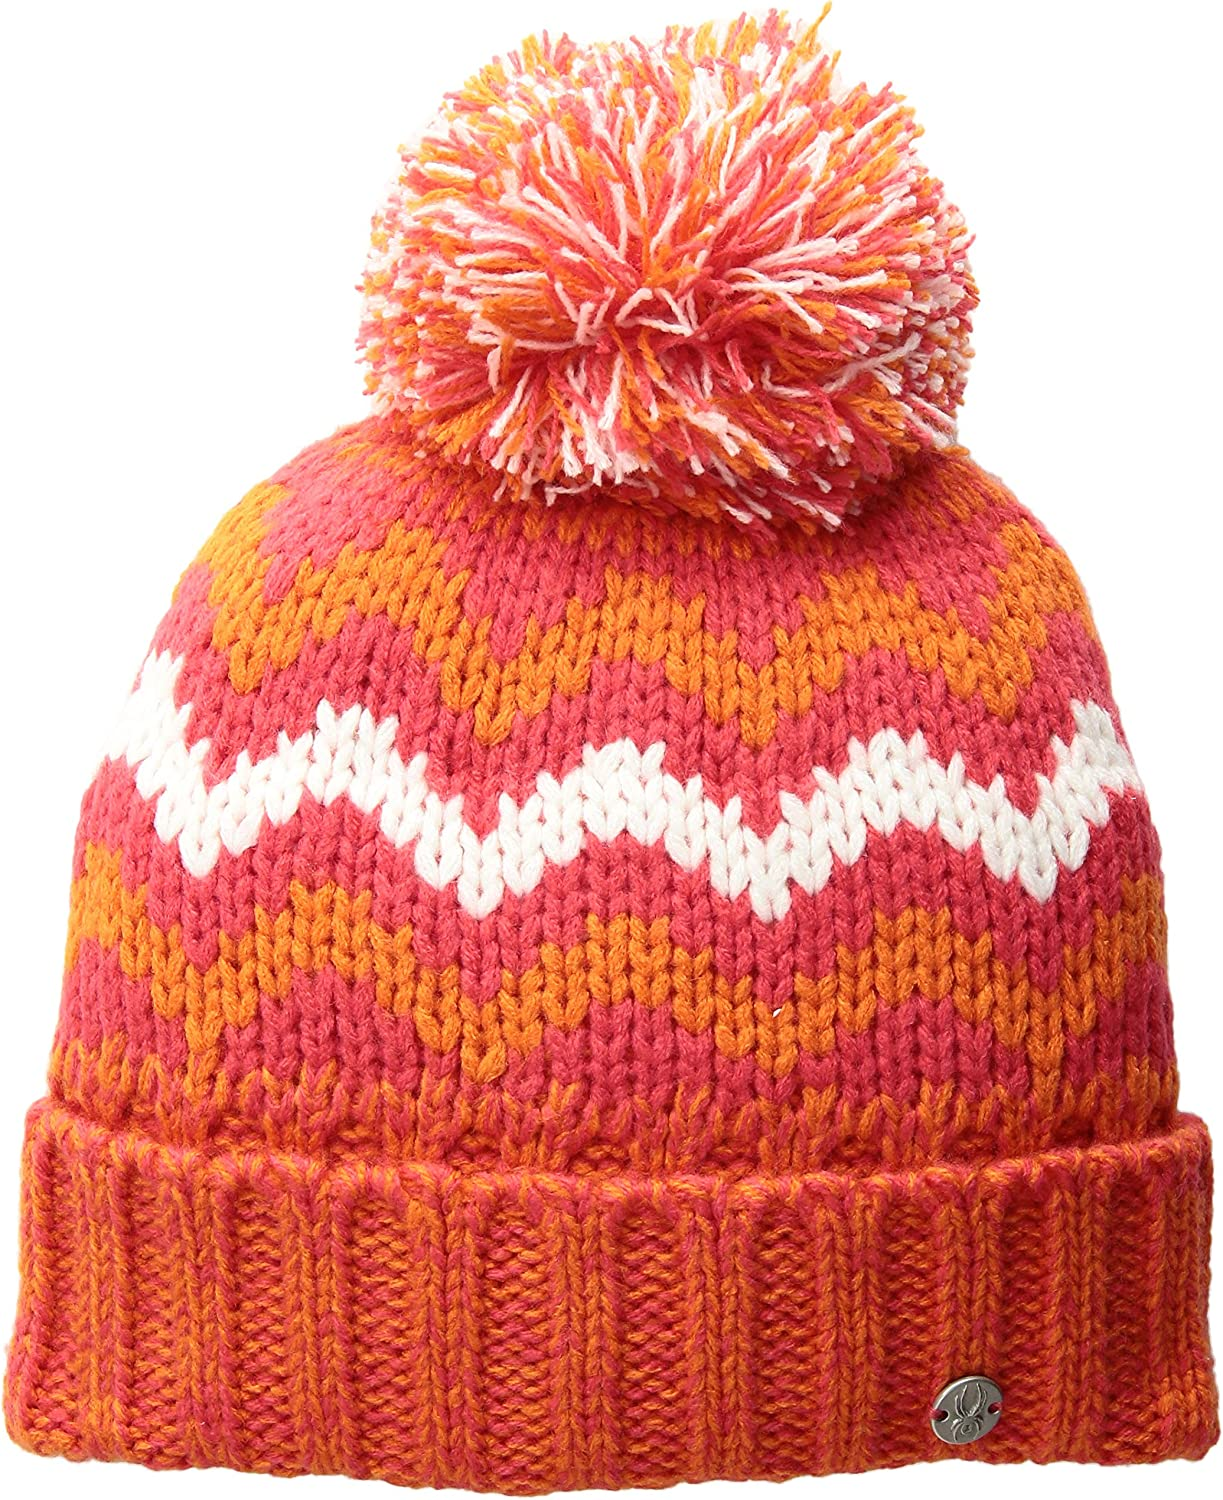 Spyder Girls' Prism Hat, Hibiscus/Golden Poppy/White, One Size : Clothing, Shoes & Jewelry